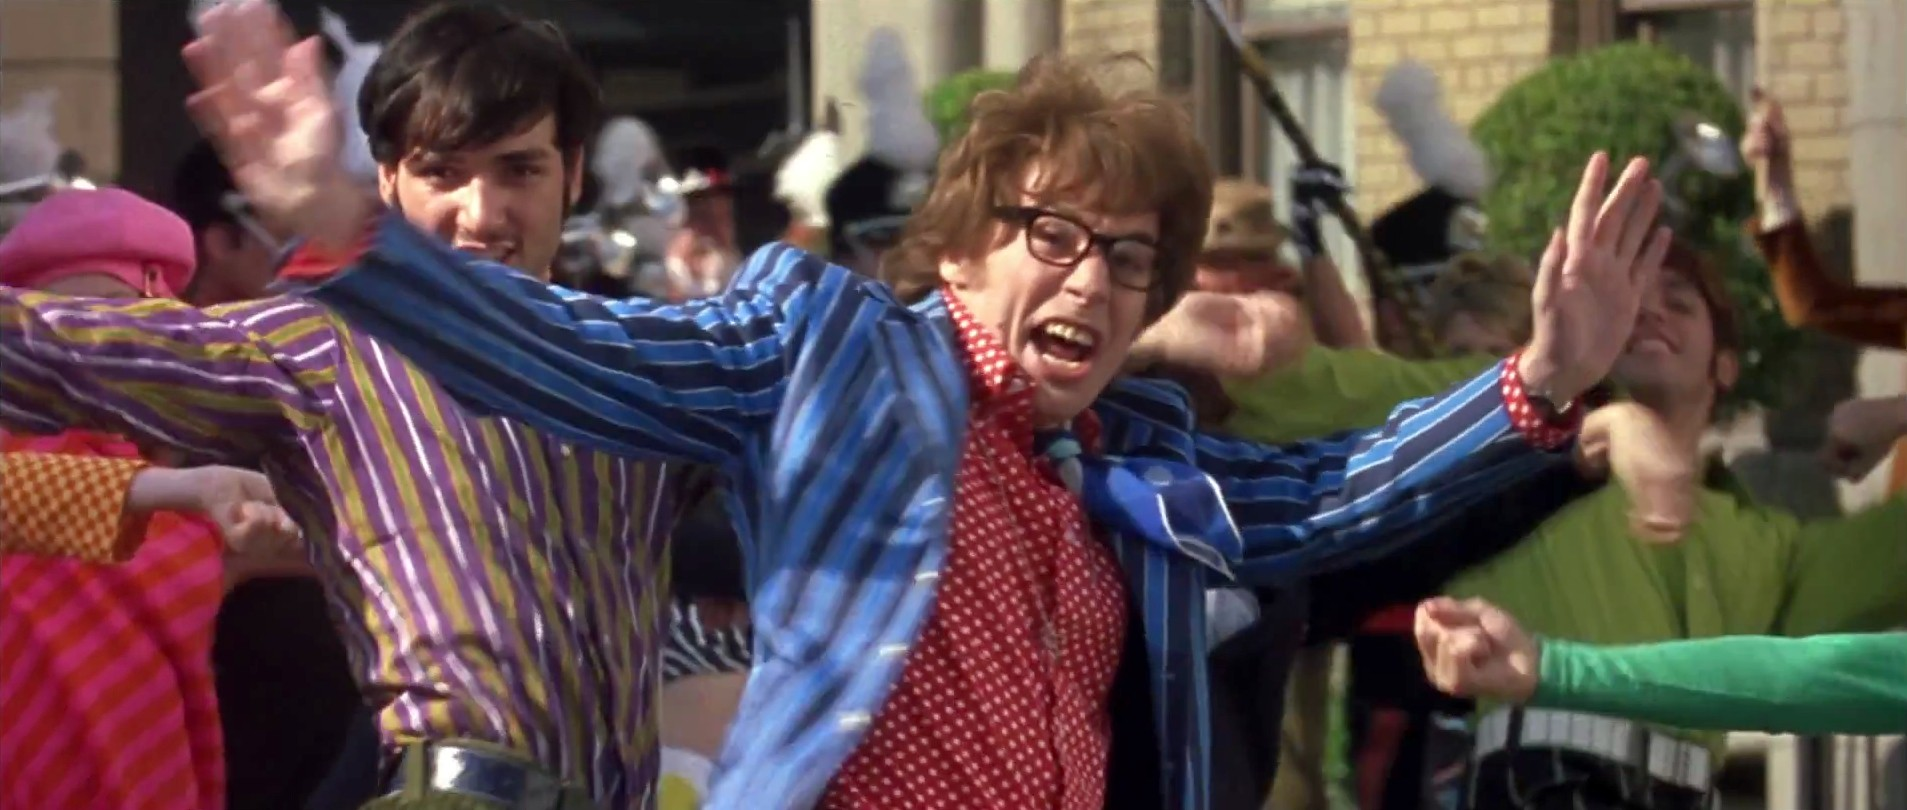 mike-myers-as-austin-powers-in-austin-powers